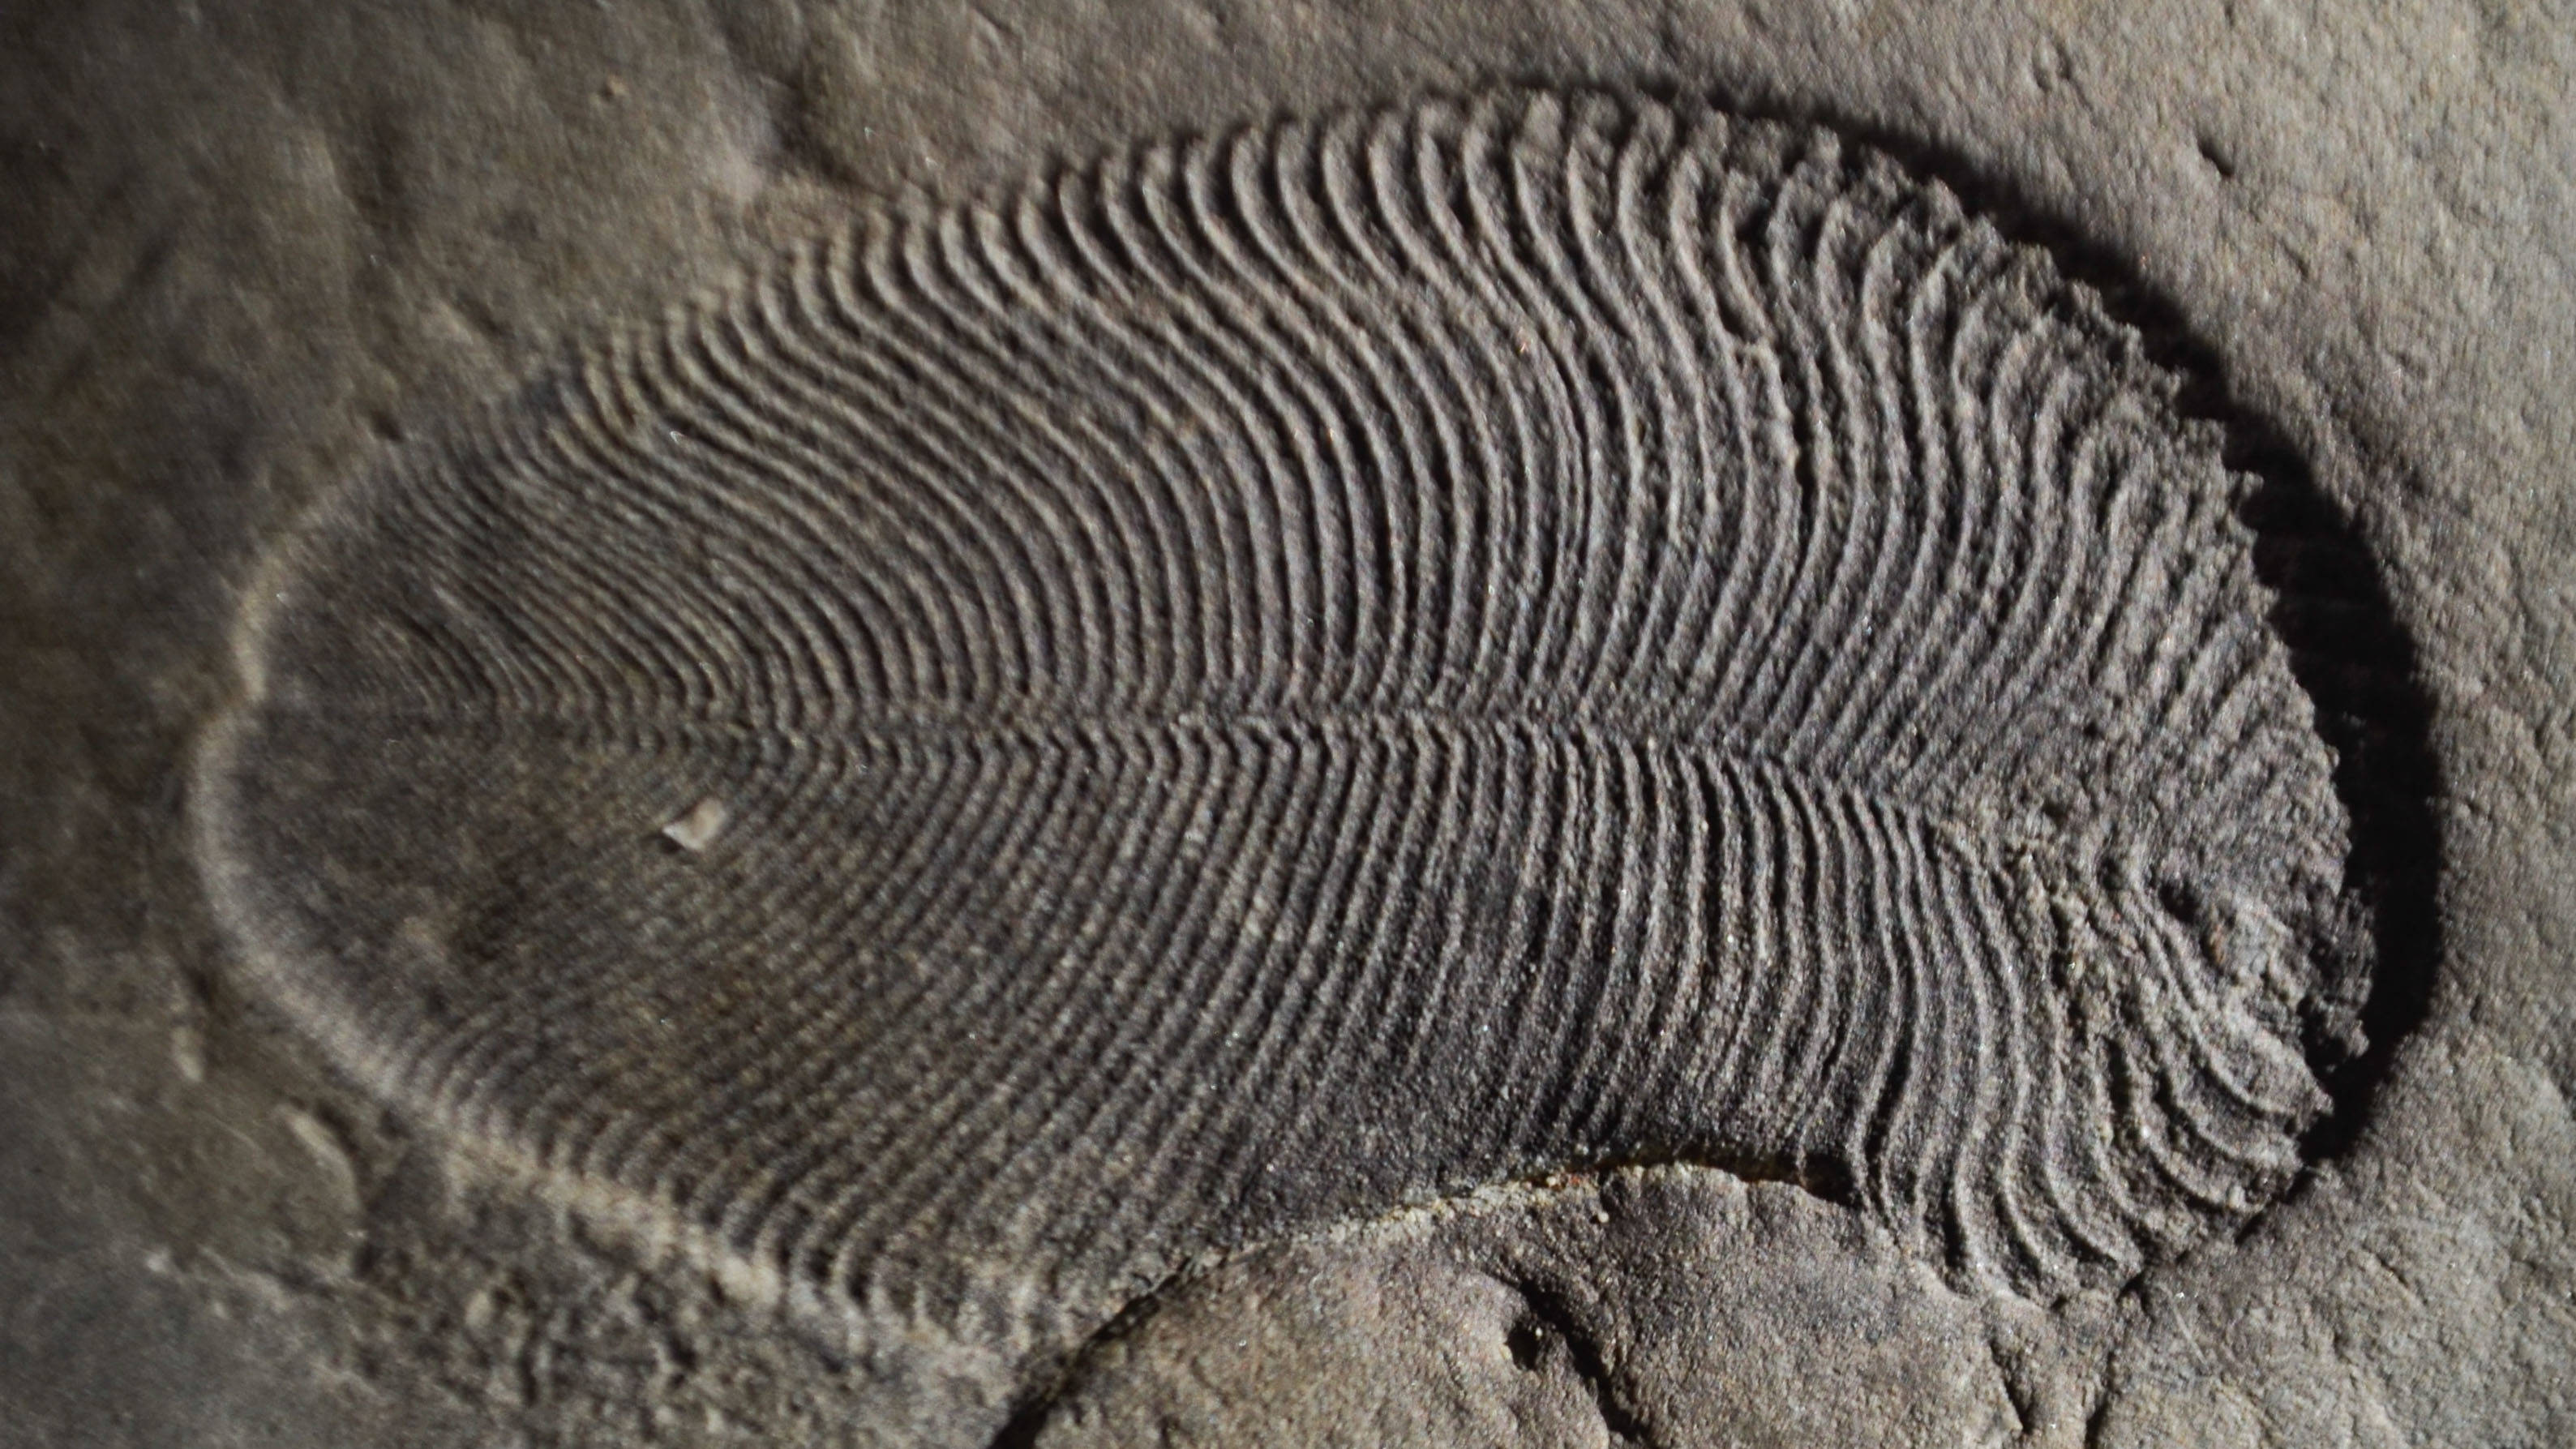 558 million-year-old fossil is world's oldest known animal, scientists say